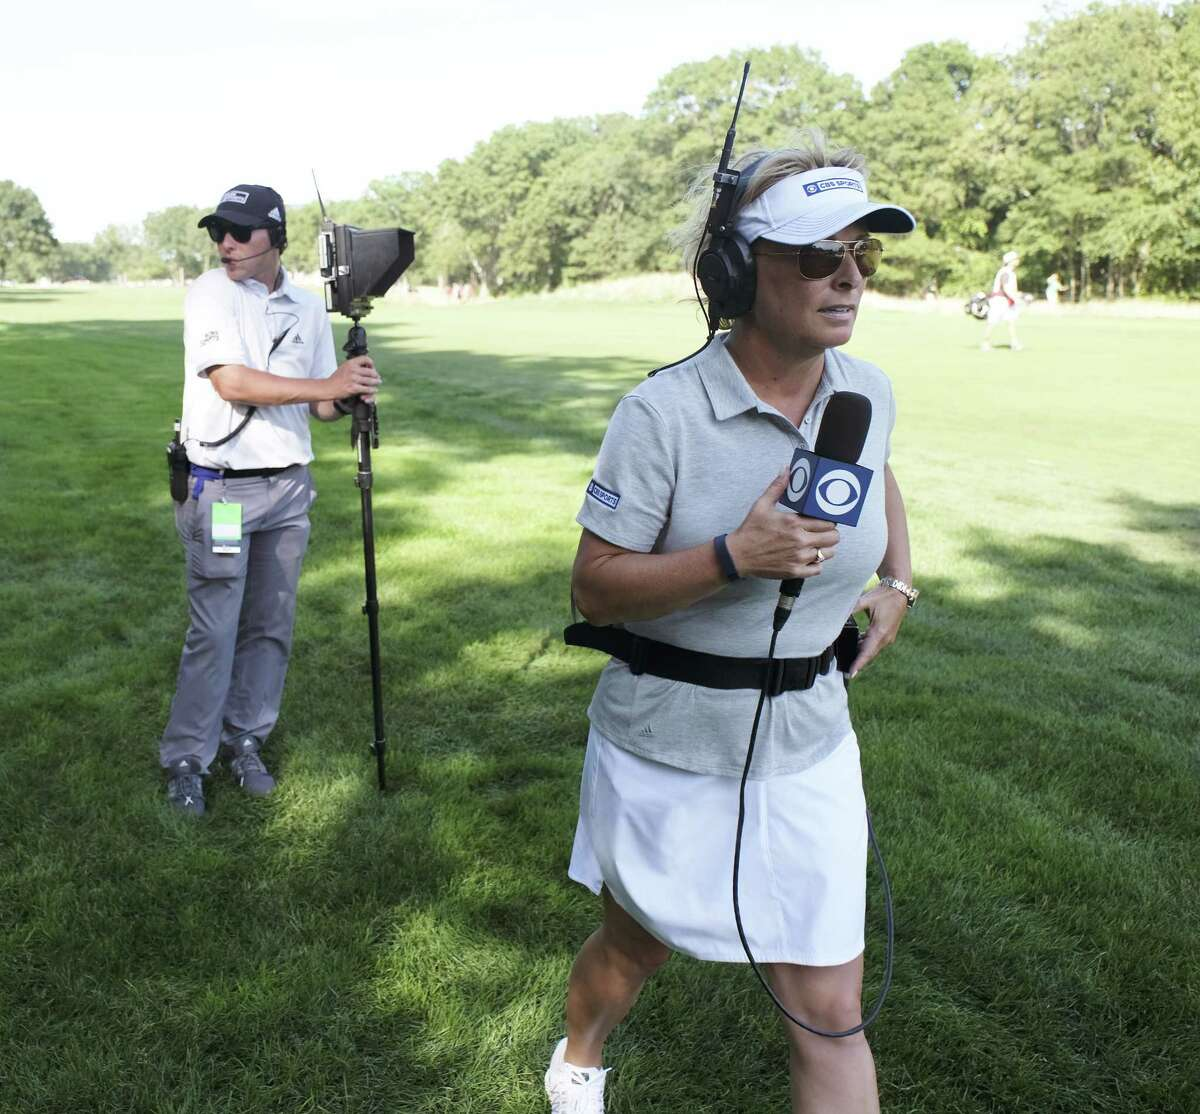 PGA TOUR ON CBS PICTURED: Dottie Pepper CBS Sports On-Course Golf Reporter Barclay\'s Golf Tournament Bethpage Black Course, NY Photo Cr.: Timothy Kuratek CBS A?Ac.2016 CBS Broadcasting Inc. All Rights Reserved